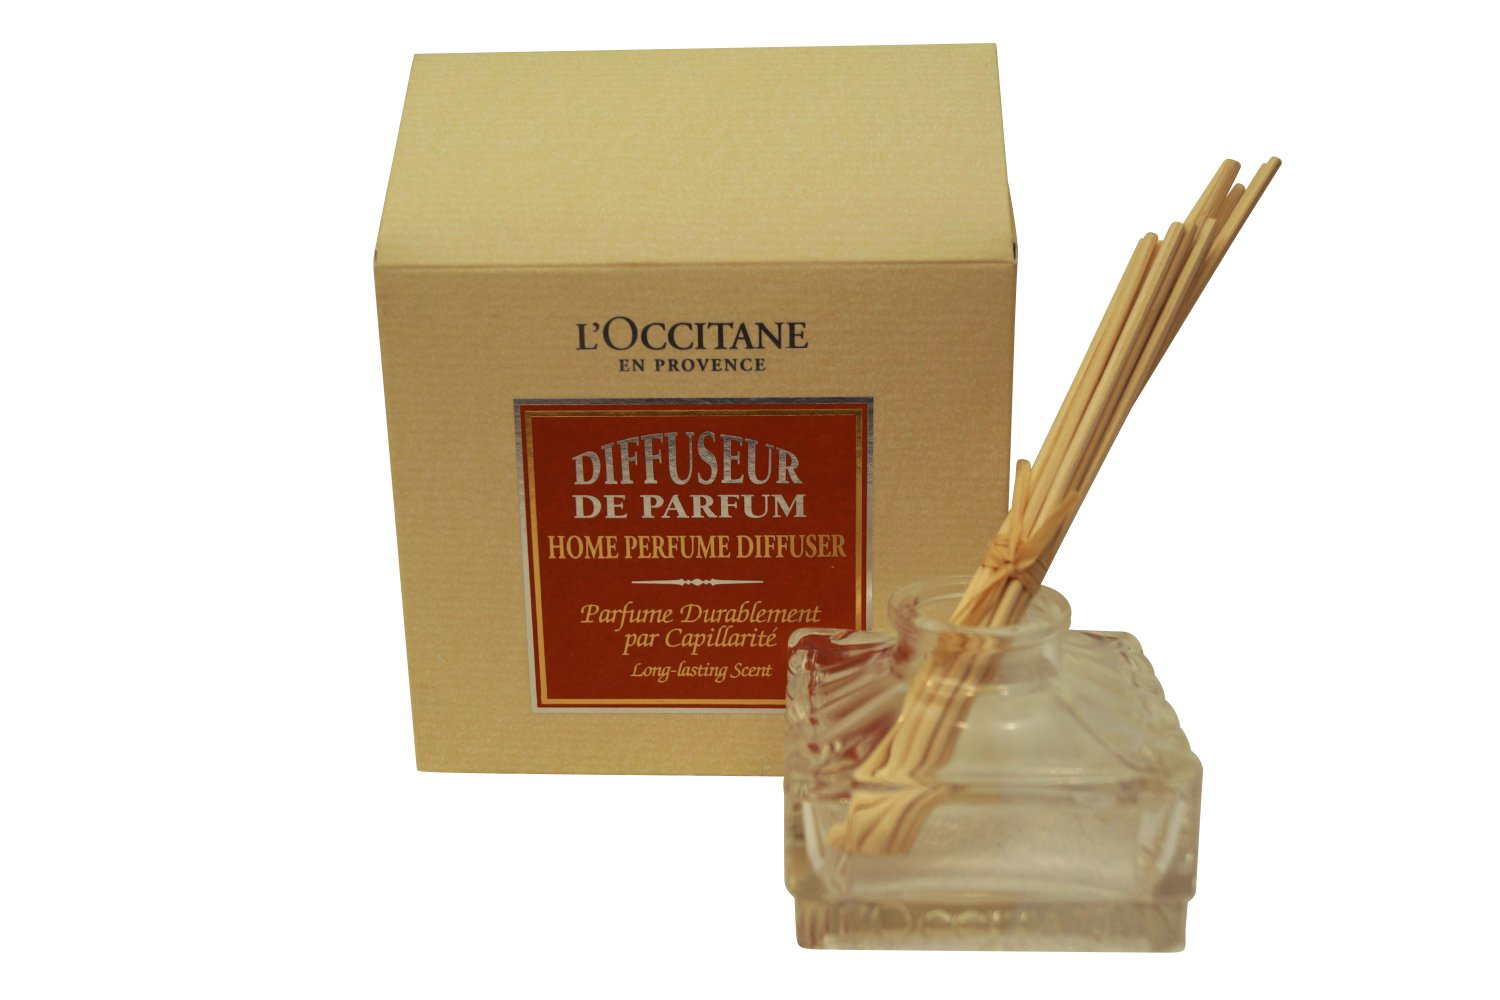 L'occitane Home Perfume Diffuser FRAGRANCE SOLD SEPARATELY